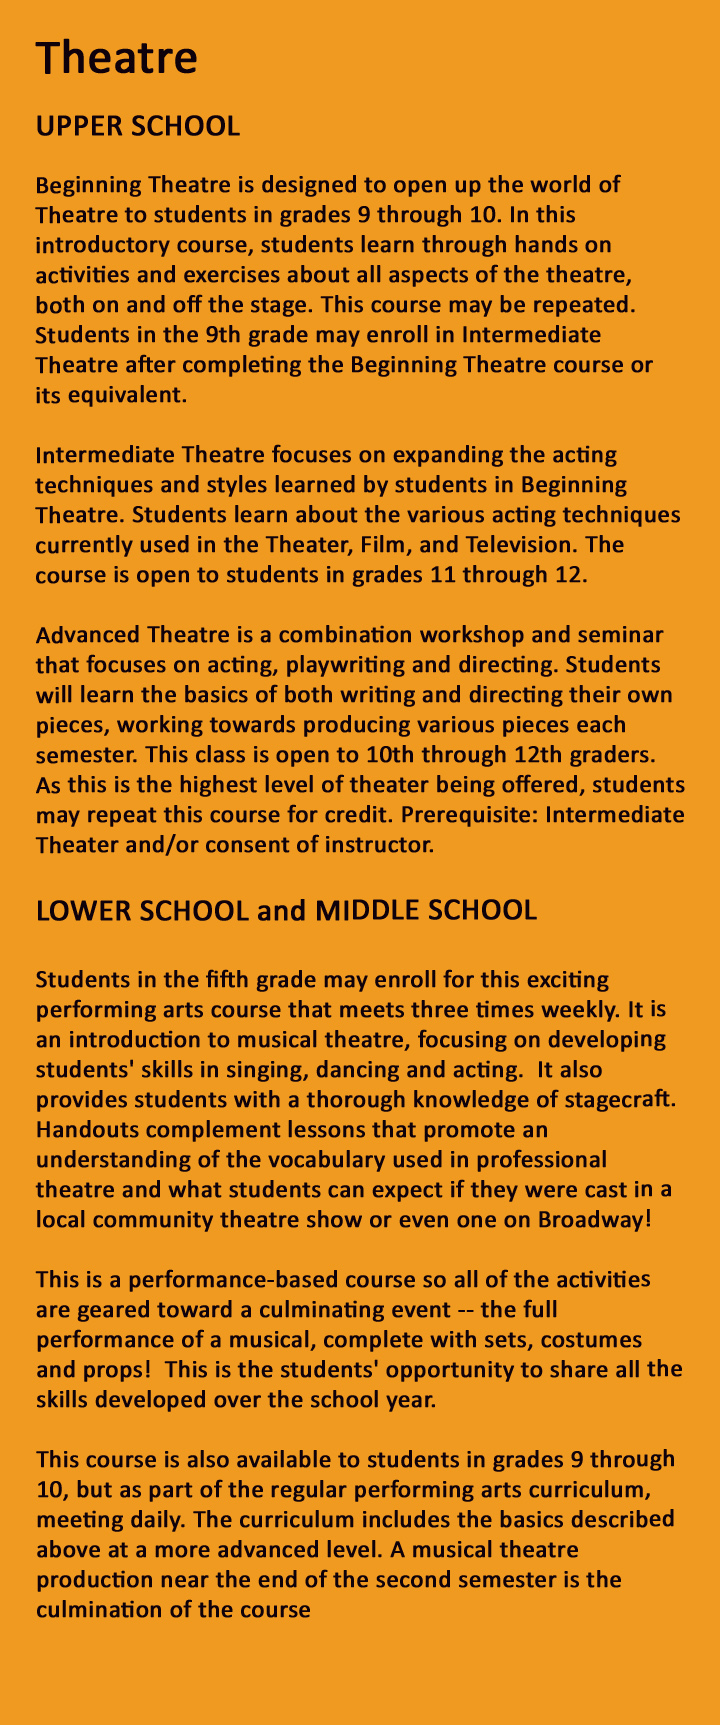 Brentwood College of Asia International School - Theatre